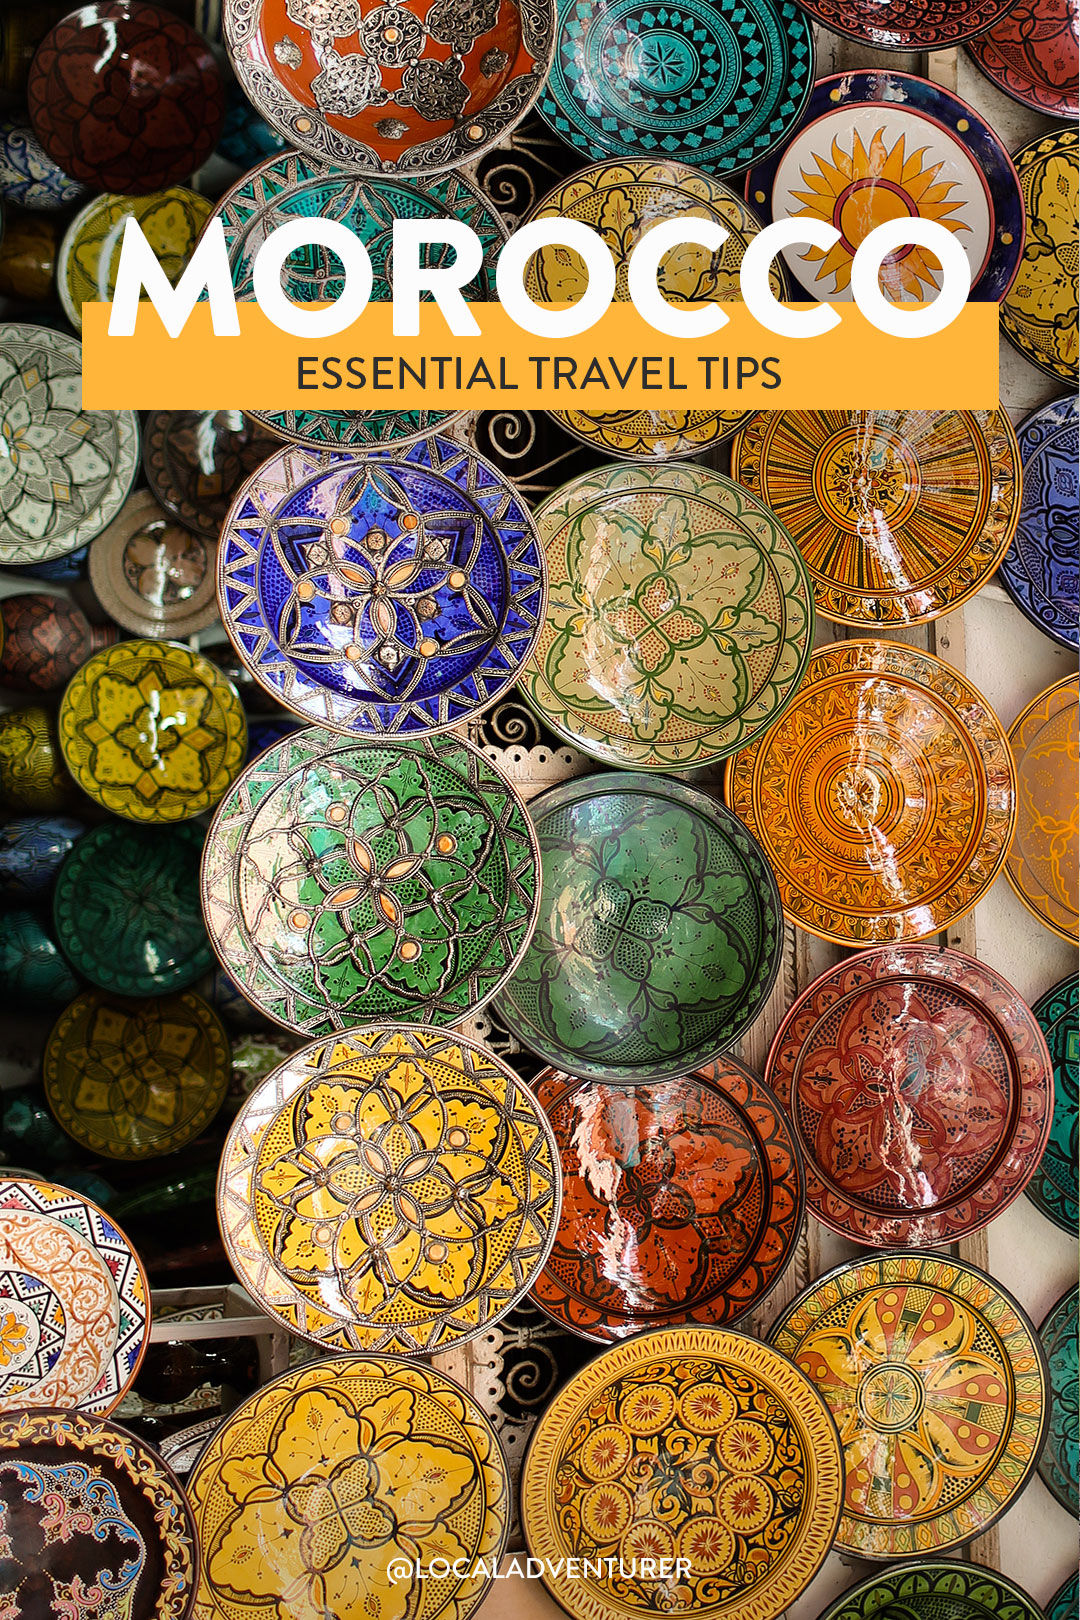 21 Essential Tips for Traveling to Morocco